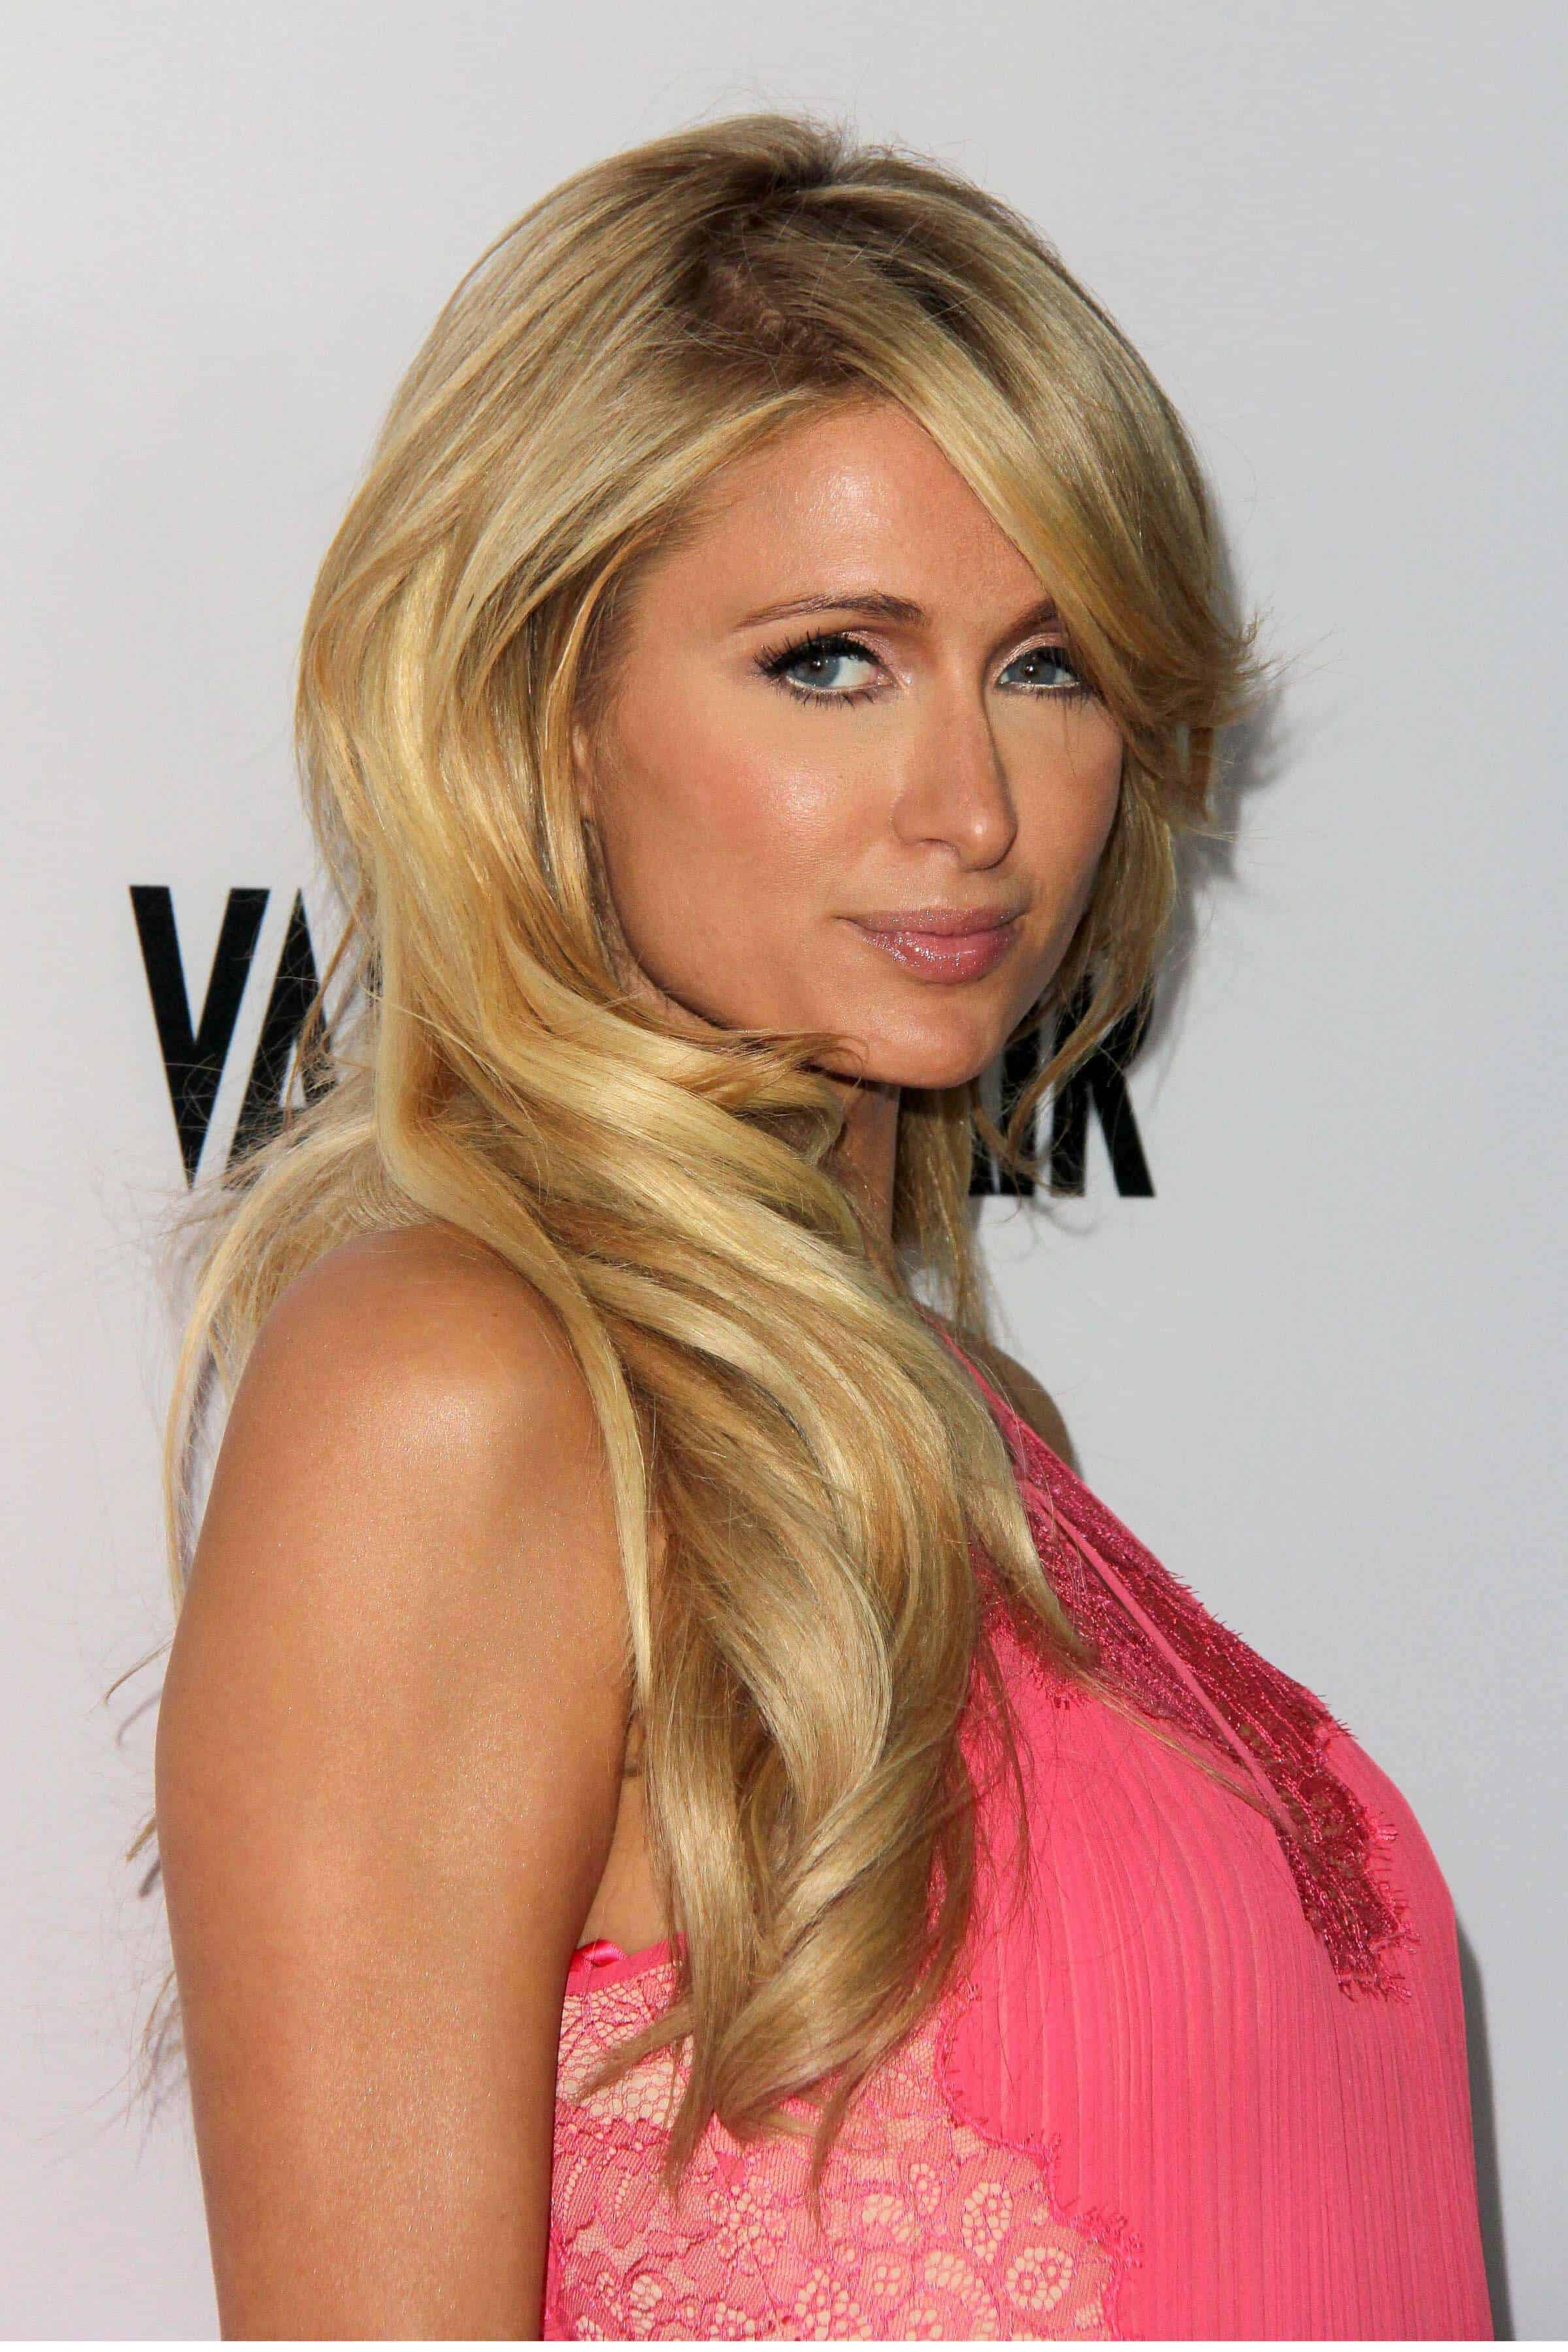 Paris Hilton looking casual yet stylish with her side-swept, layered hairdo during the